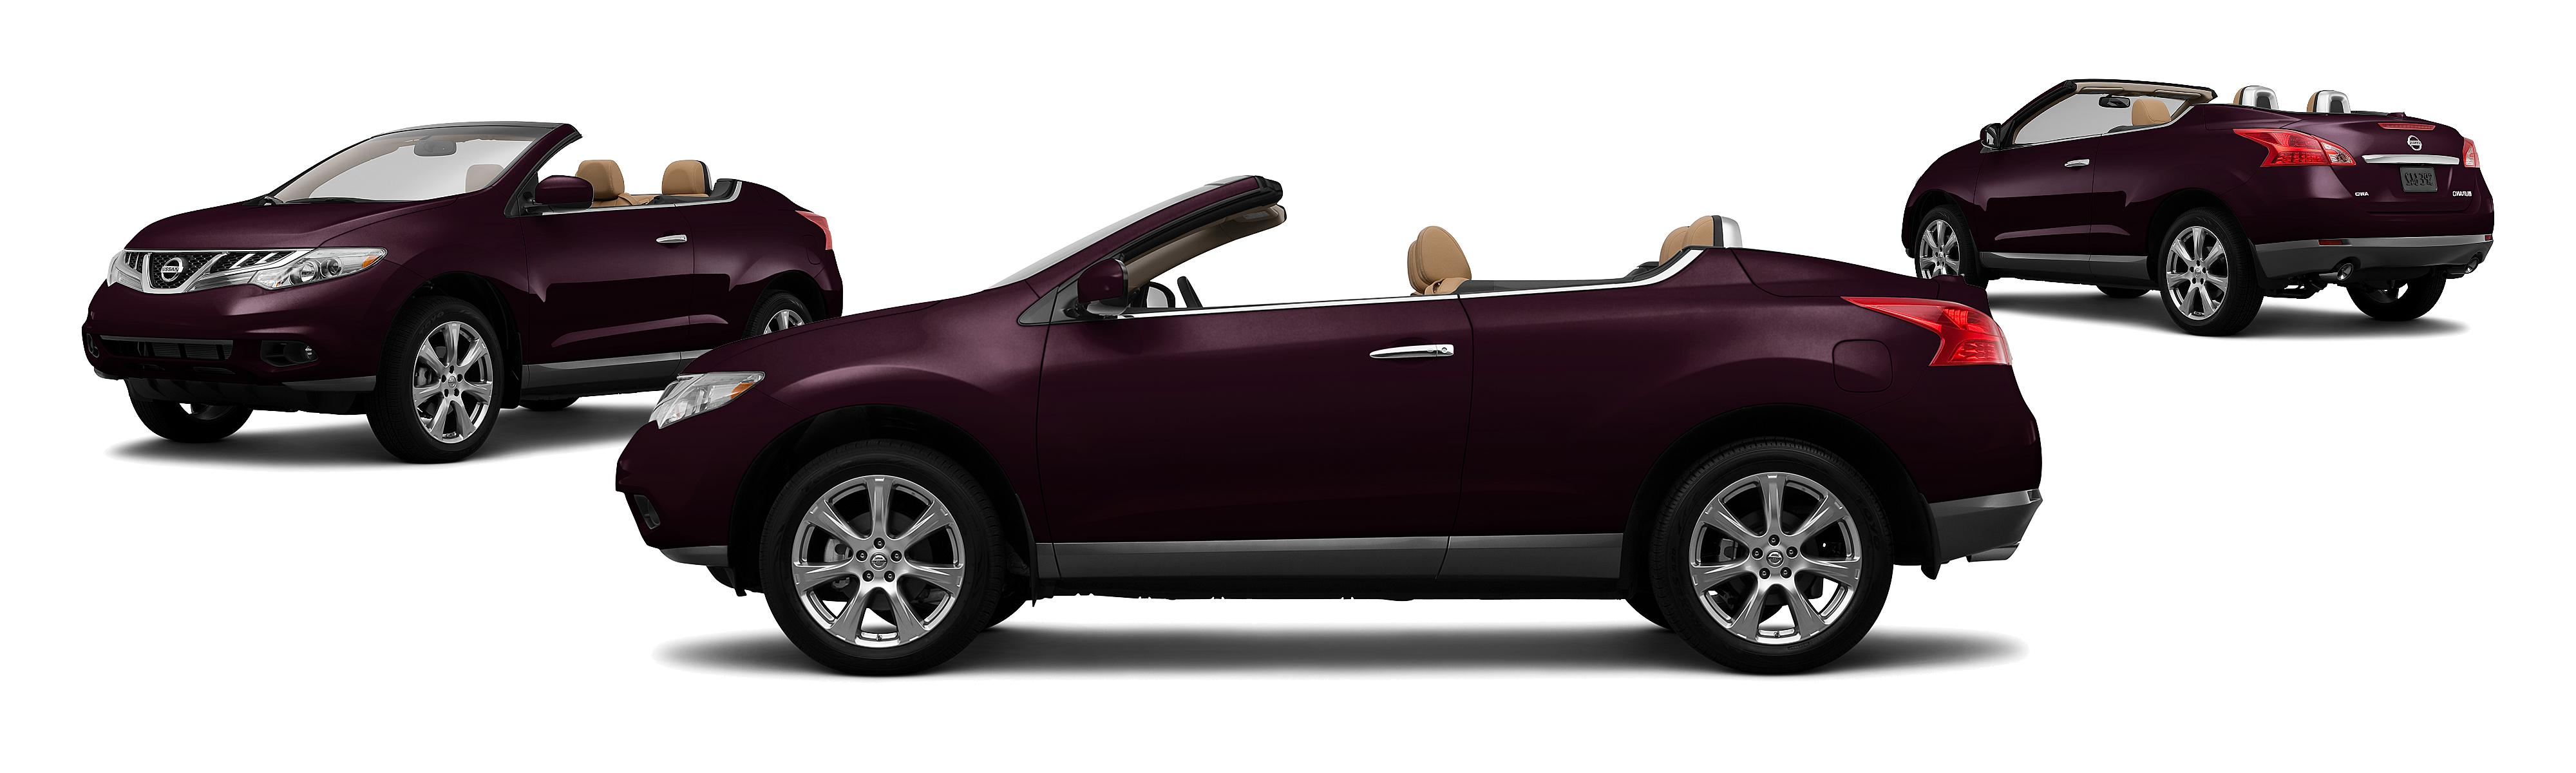 about convertible nissan starts cars muranocctopup for the murano at sale crosscabriolet truth